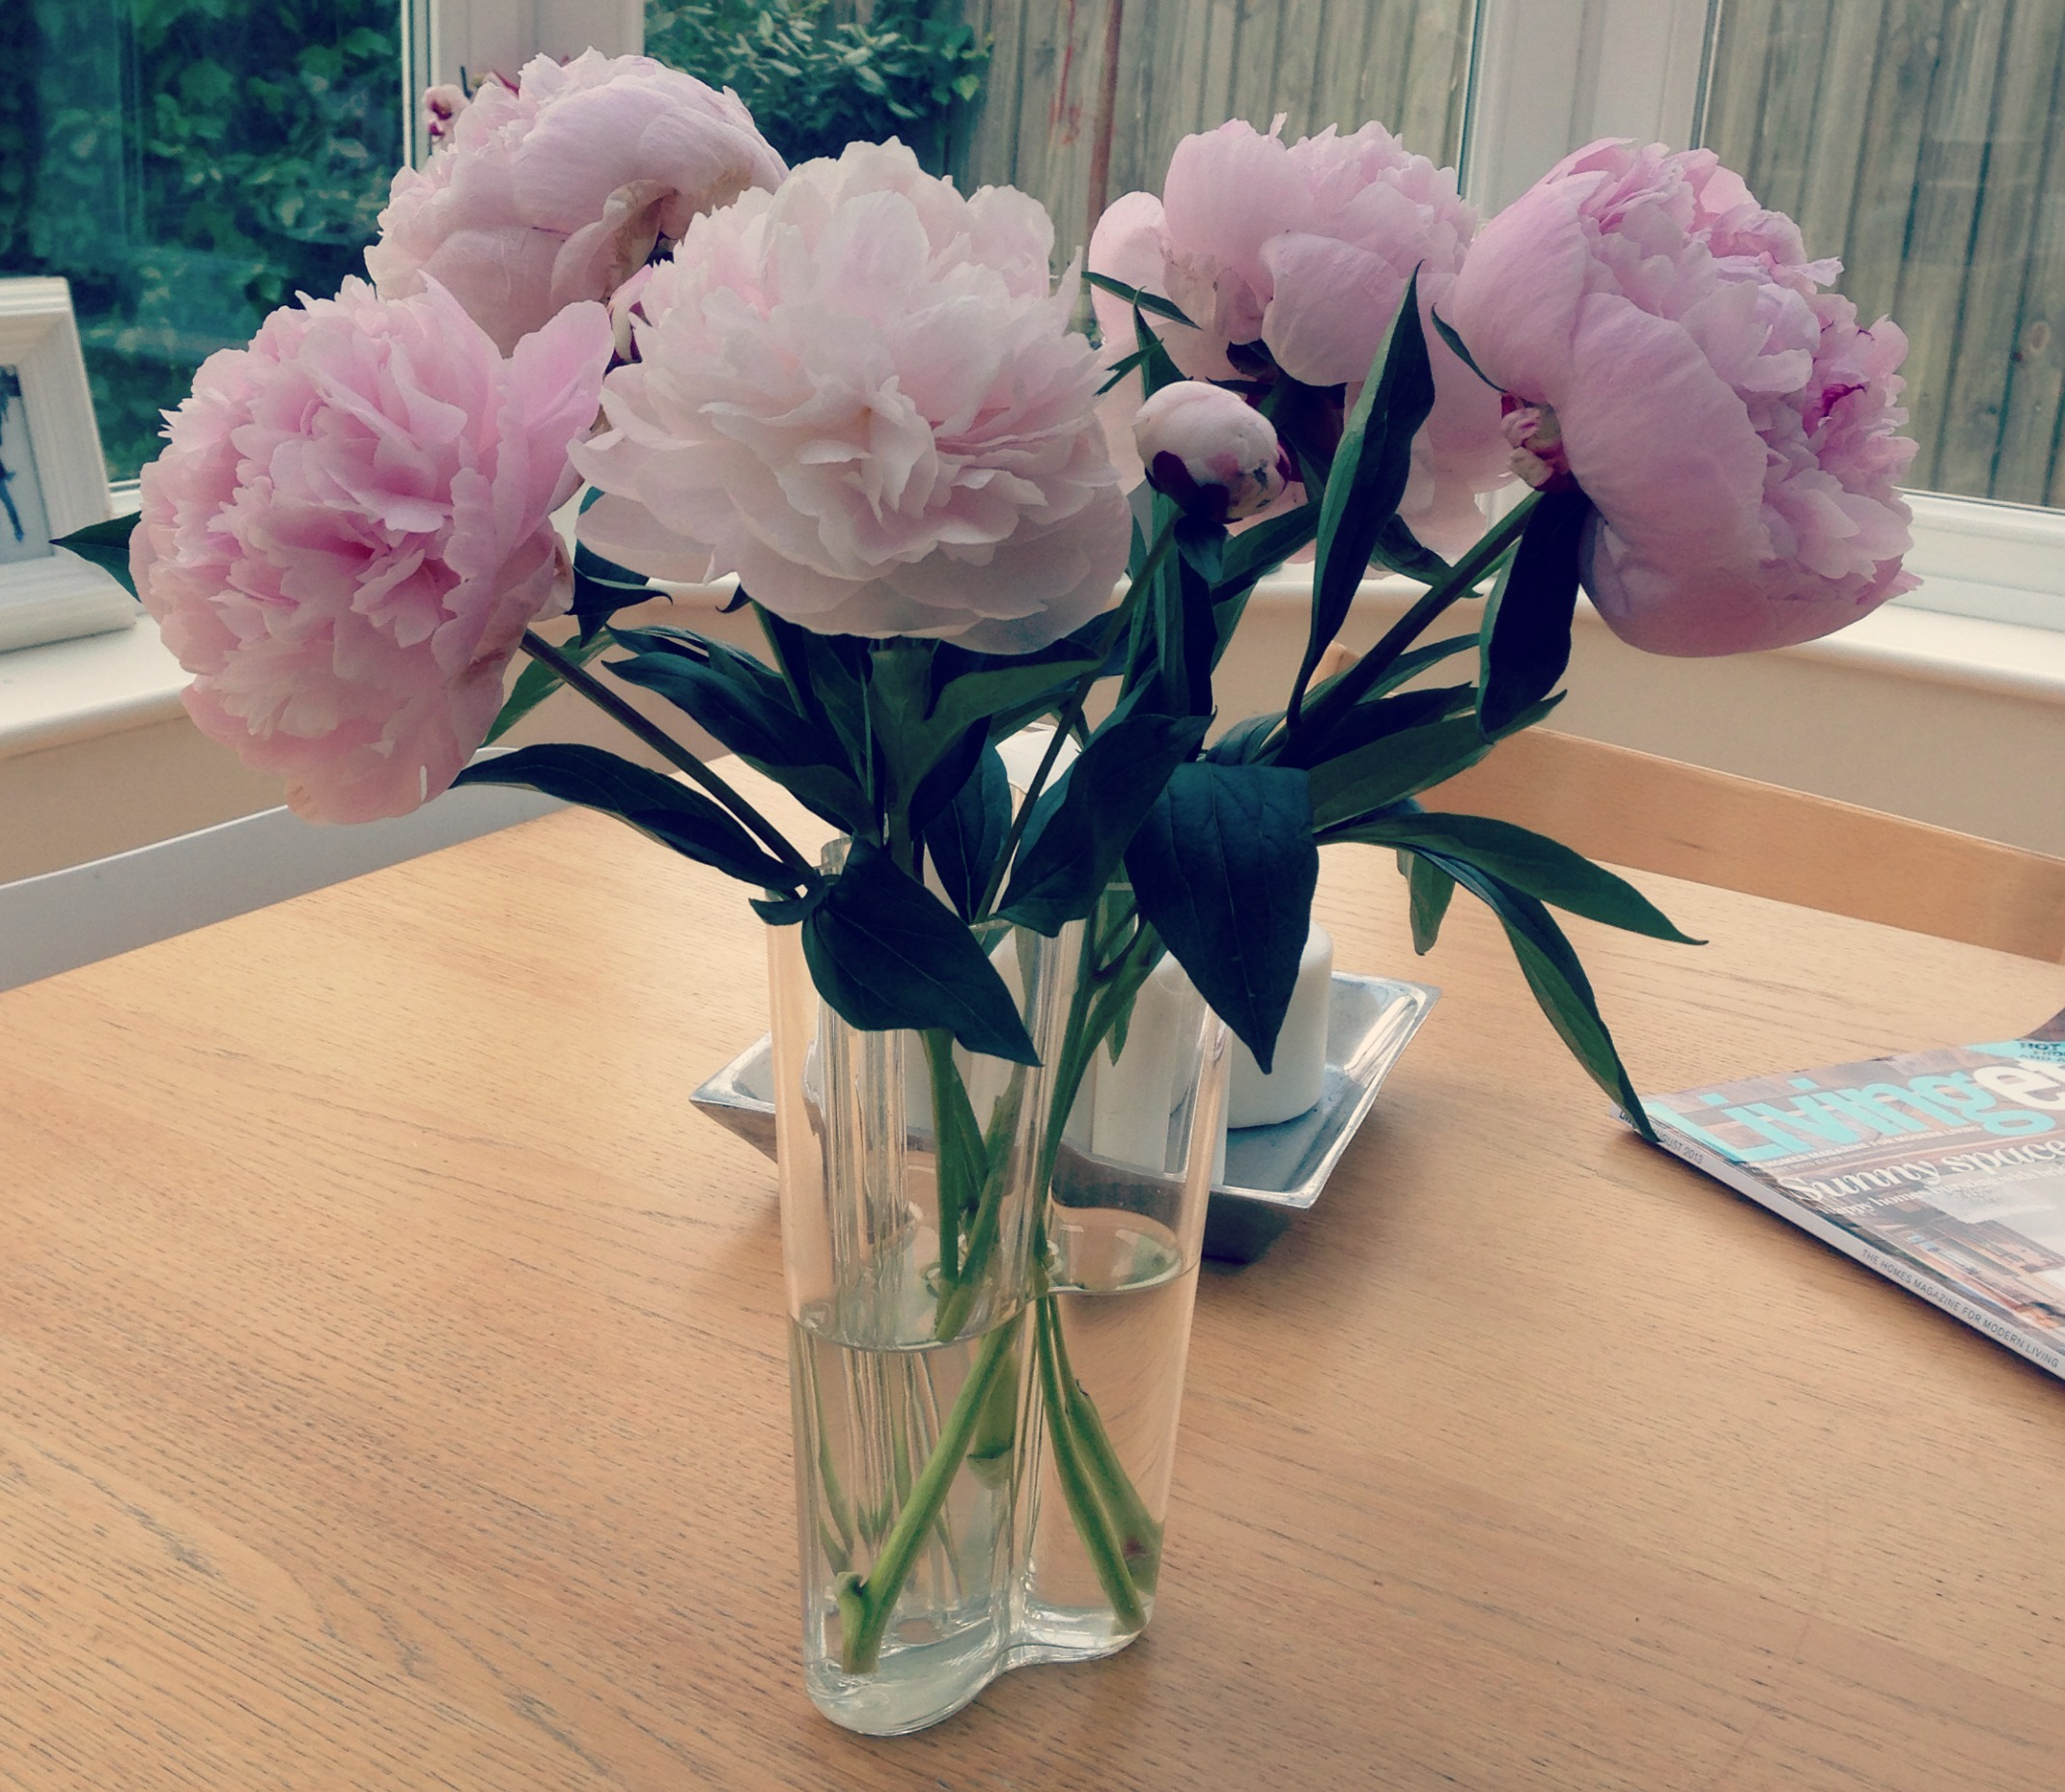 Awesome Buying Peonies On A Friday Has Become A Rather Nice Habit. Sometimes My  Husband Has Even Been Known To Buy Them For Me!